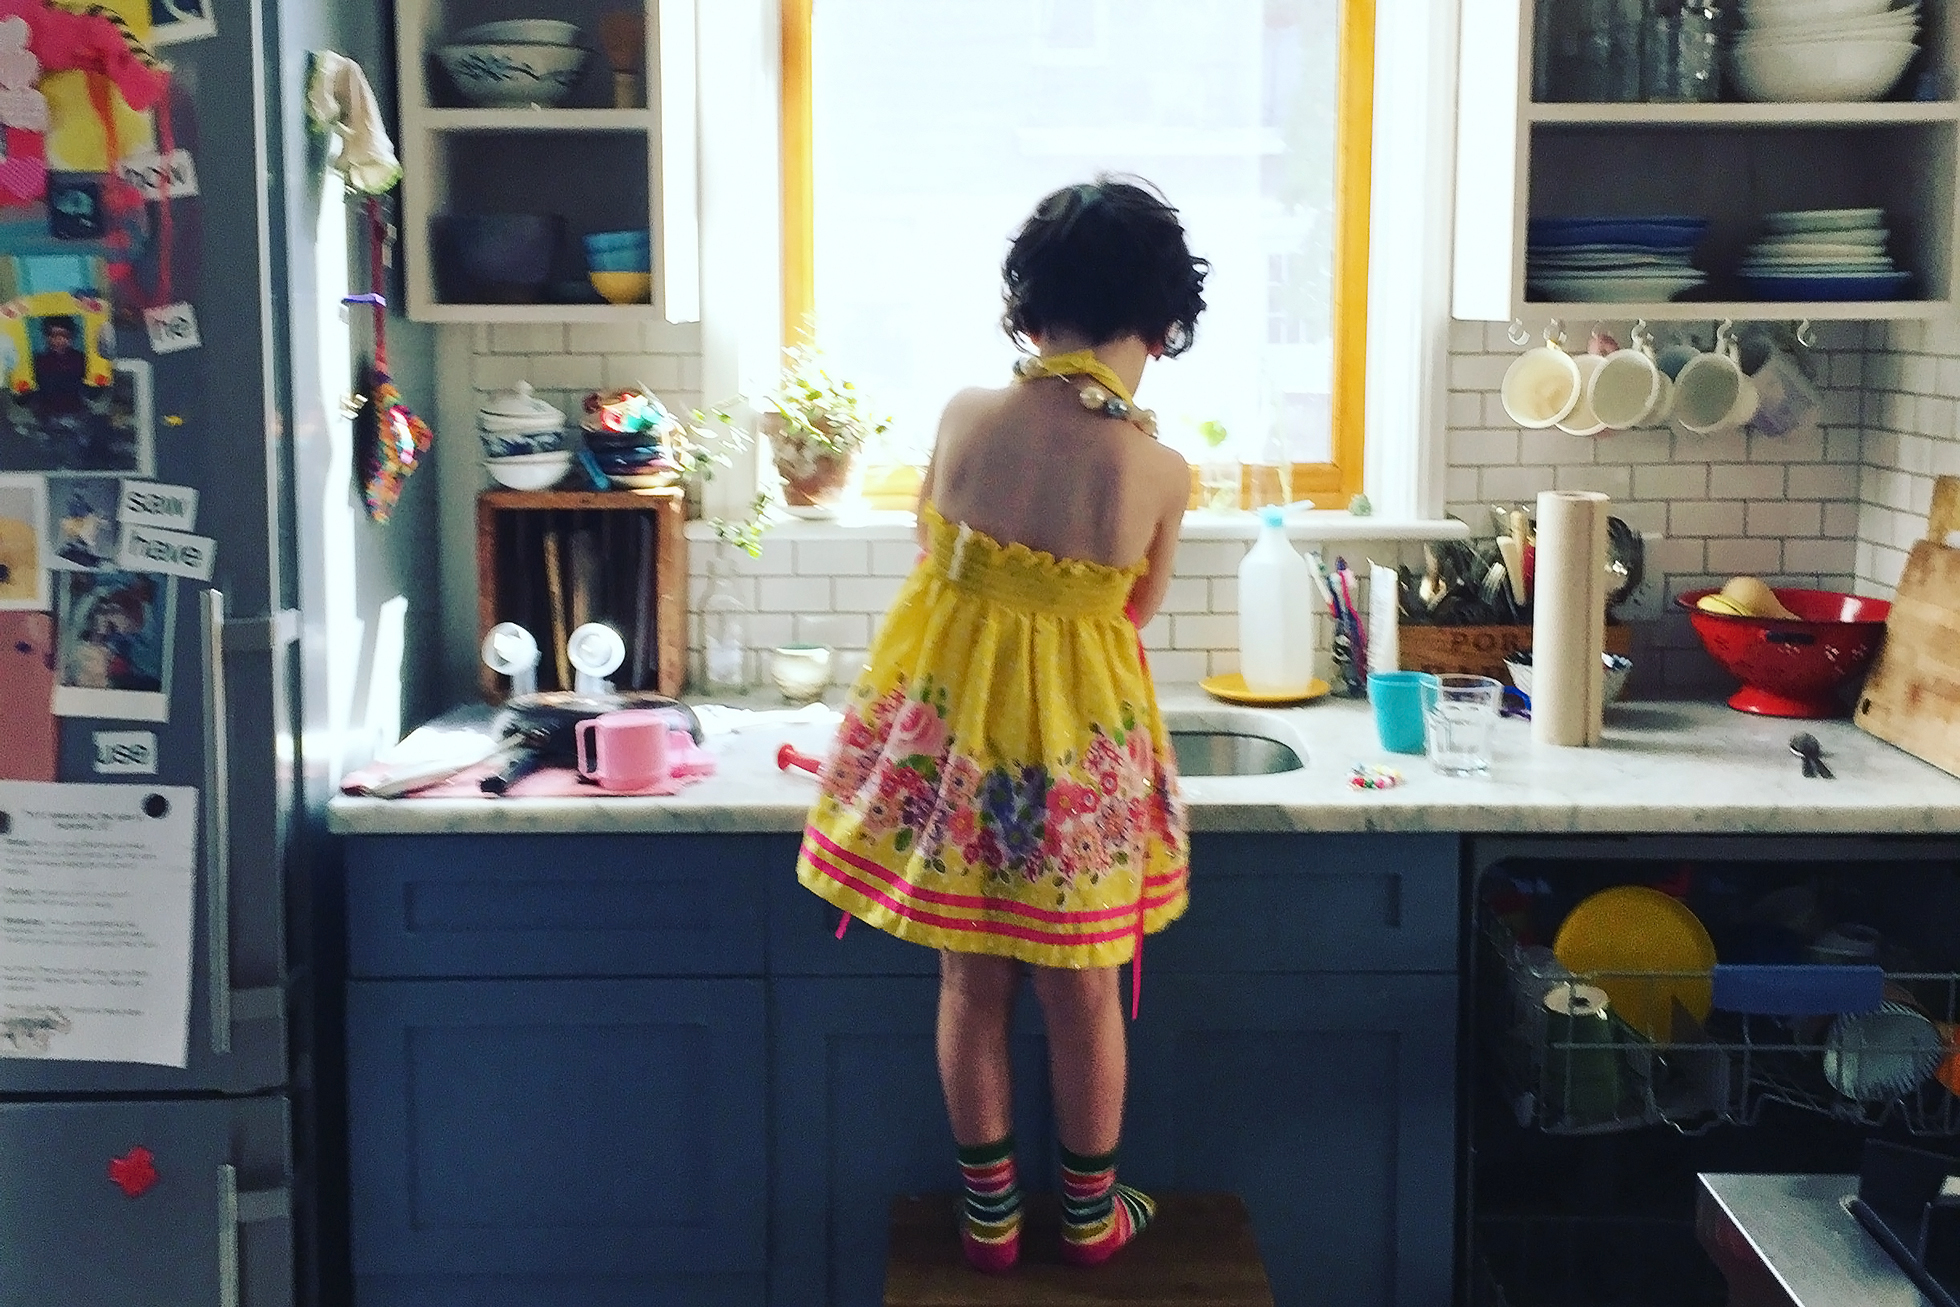 A young girl standing on a step stool in a kitchen